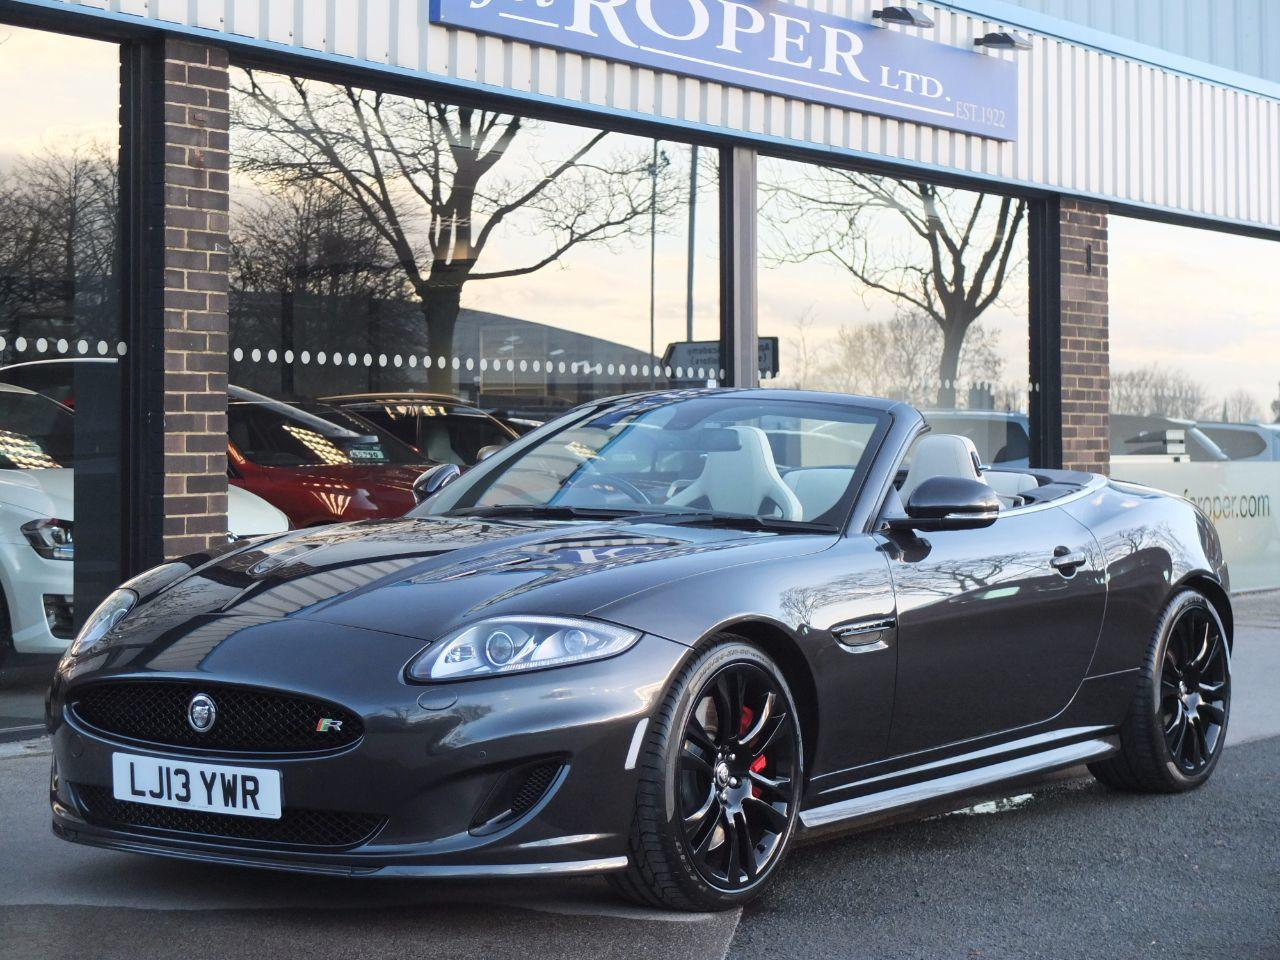 Jaguar XK Convertible 5.0 Supercharged V8 R Auto (Speed Body Pack, Performance Seats) Convertible Petrol Stratus Grey MetallicJaguar XK Convertible 5.0 Supercharged V8 R Auto (Speed Body Pack, Performance Seats) Convertible Petrol Stratus Grey Metallic at fa Roper Ltd Bradford